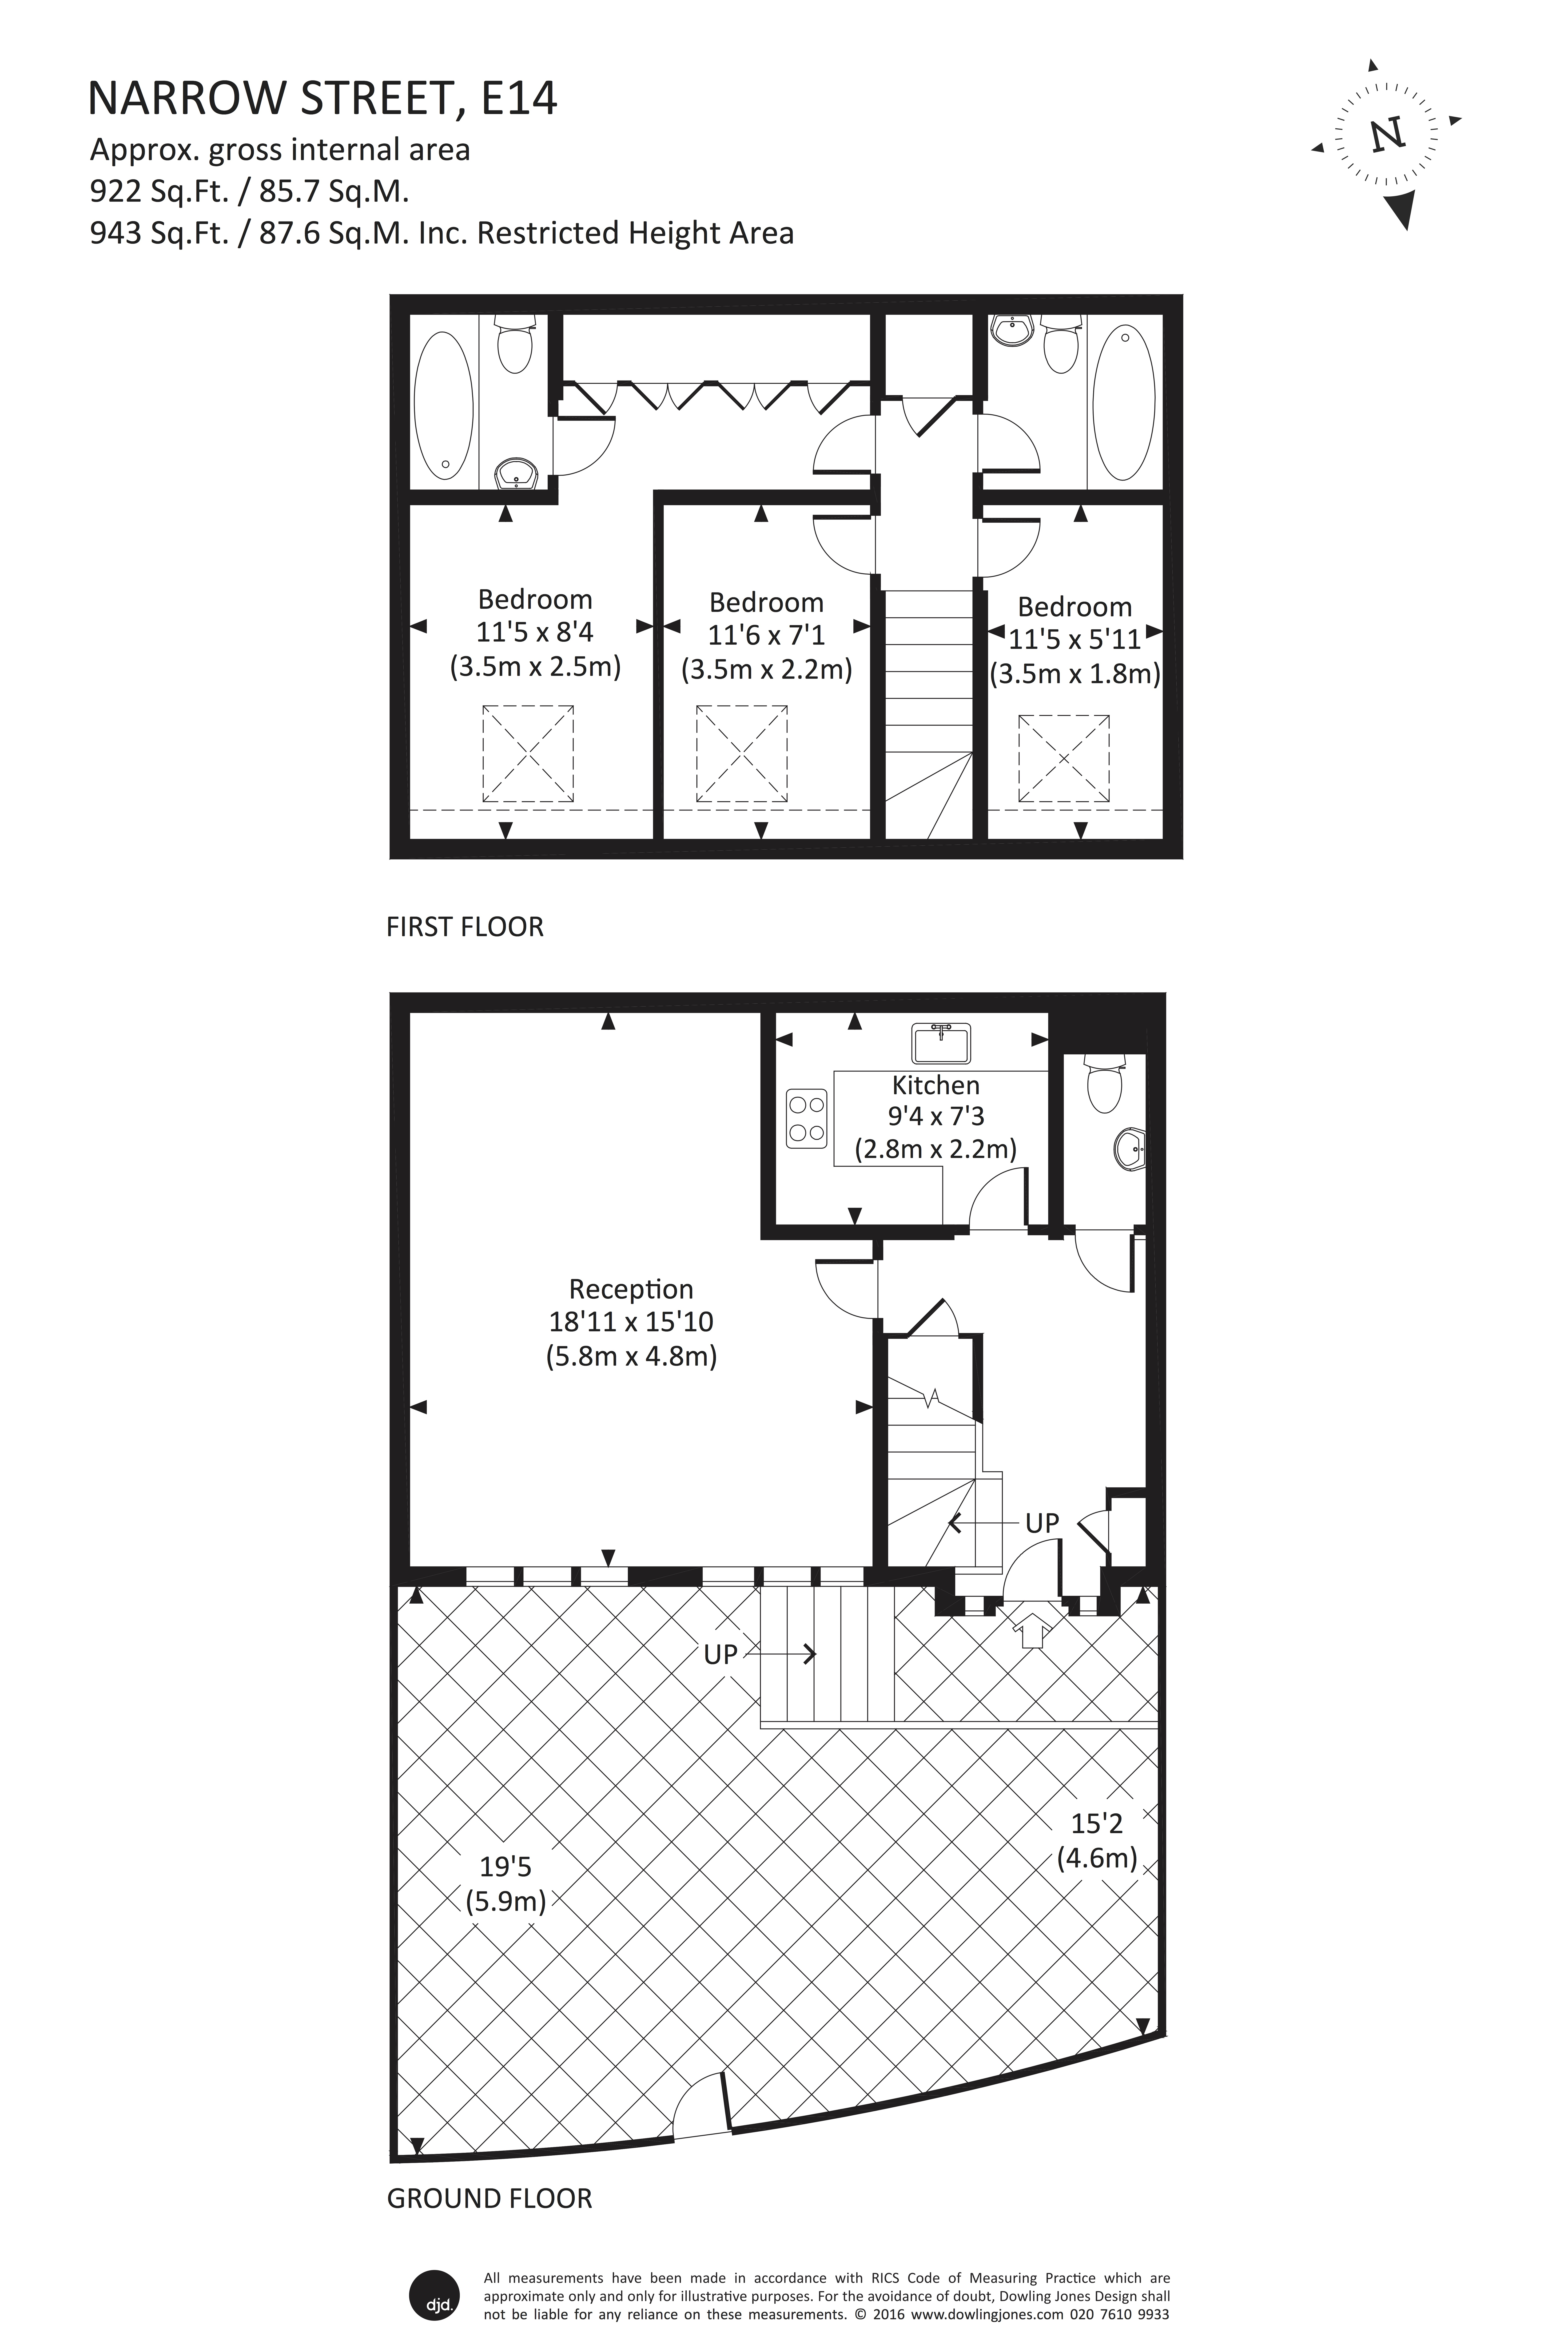 3 Bedrooms Barn conversion to rent in St. Georges Square, London E14